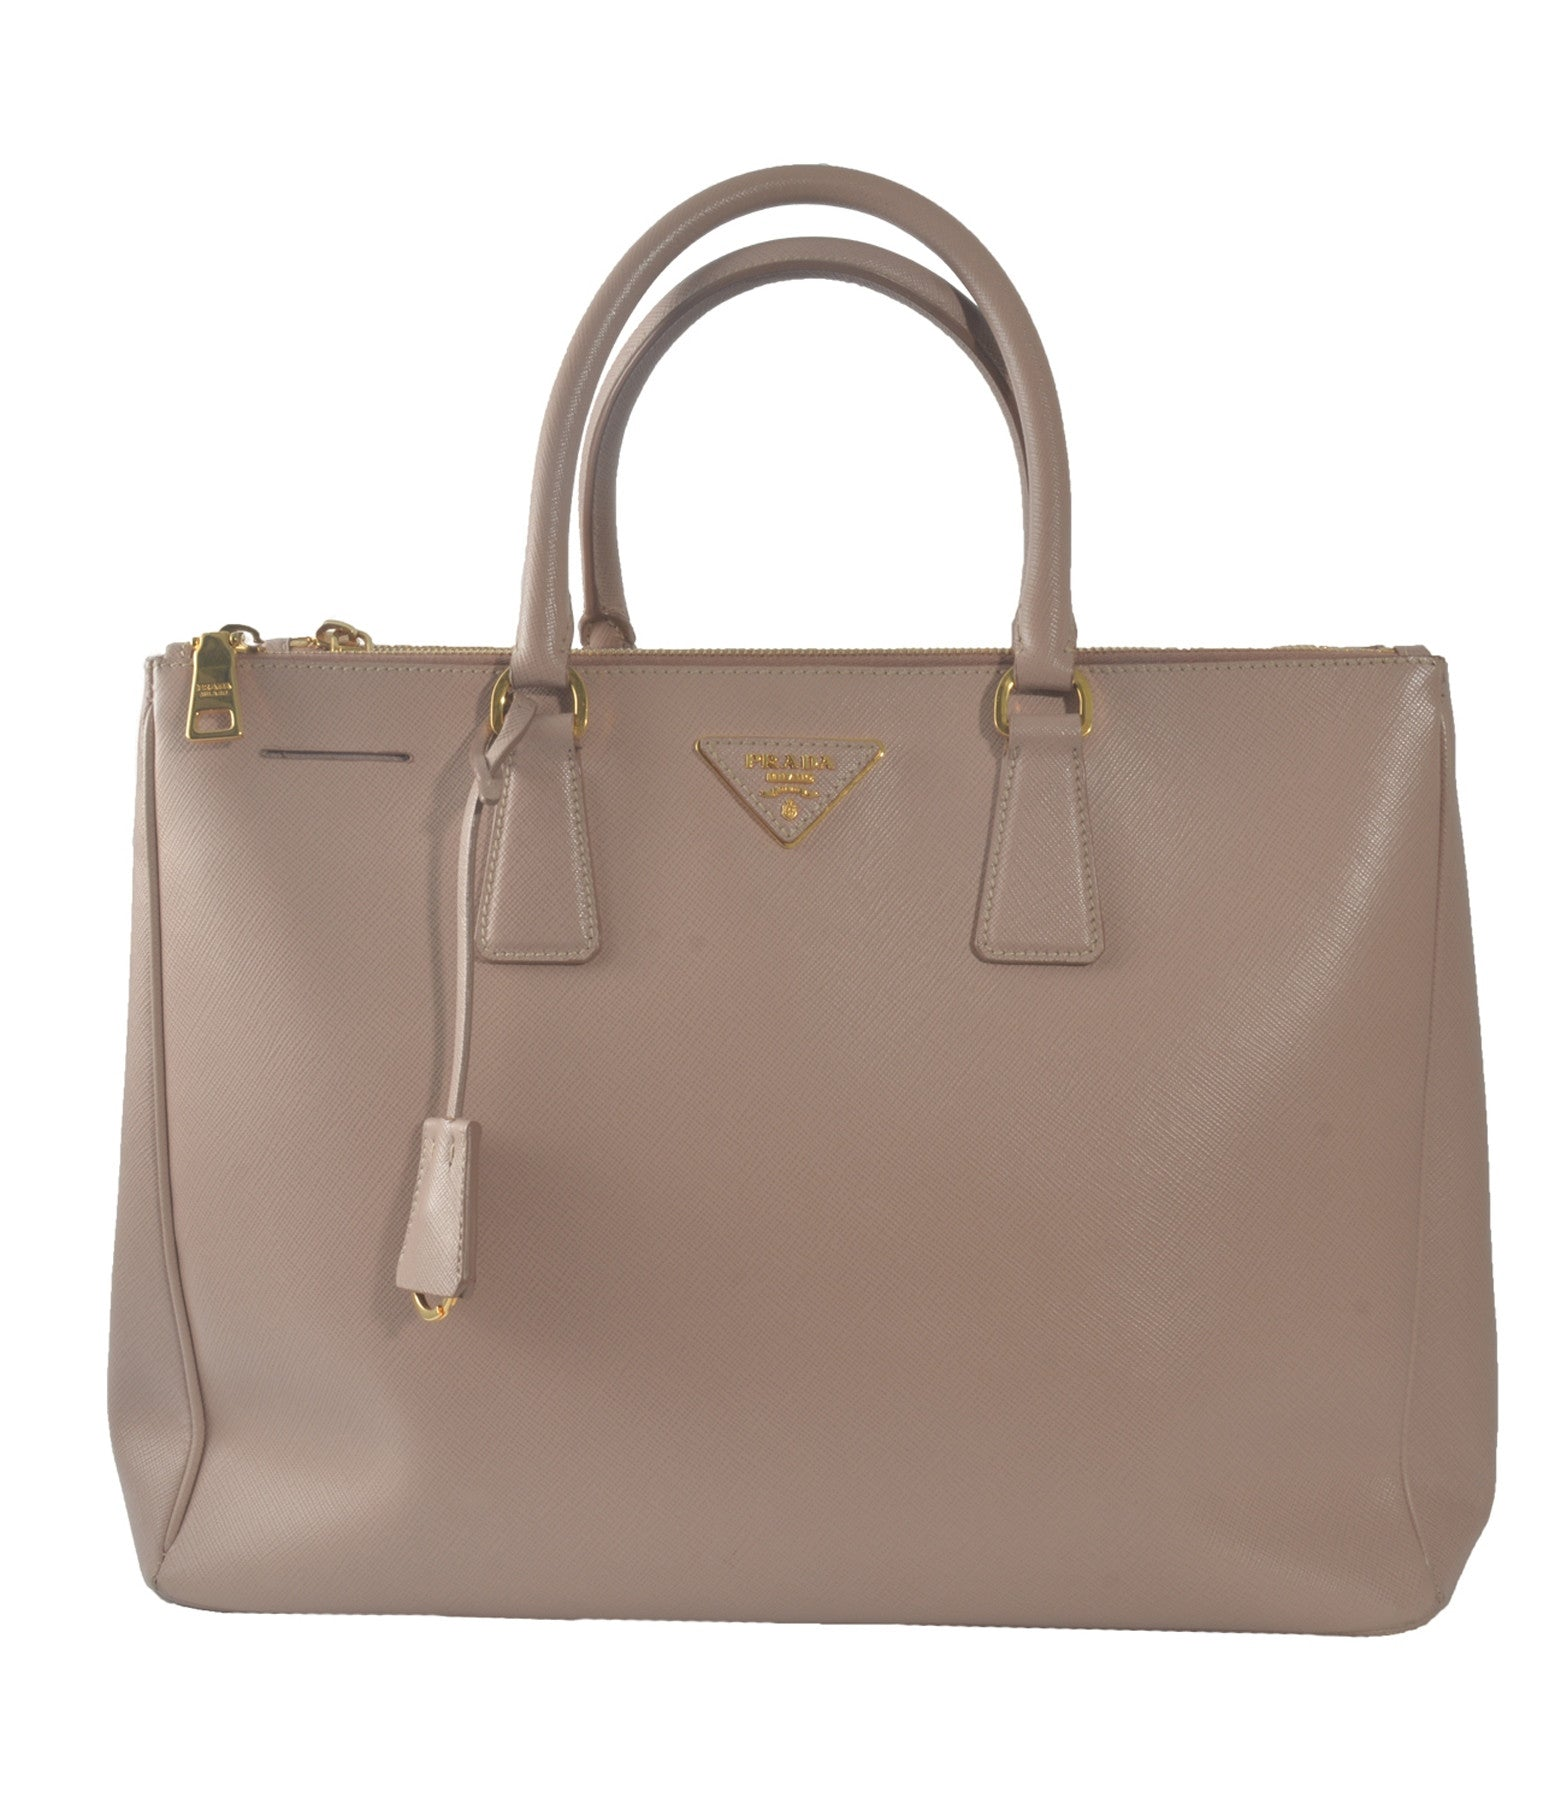 5788a25a7d2a1c PRADA SAFFIANO LUX LEATHER LARGE DOUBLE ZIP TOTE – Kidsstyleforless